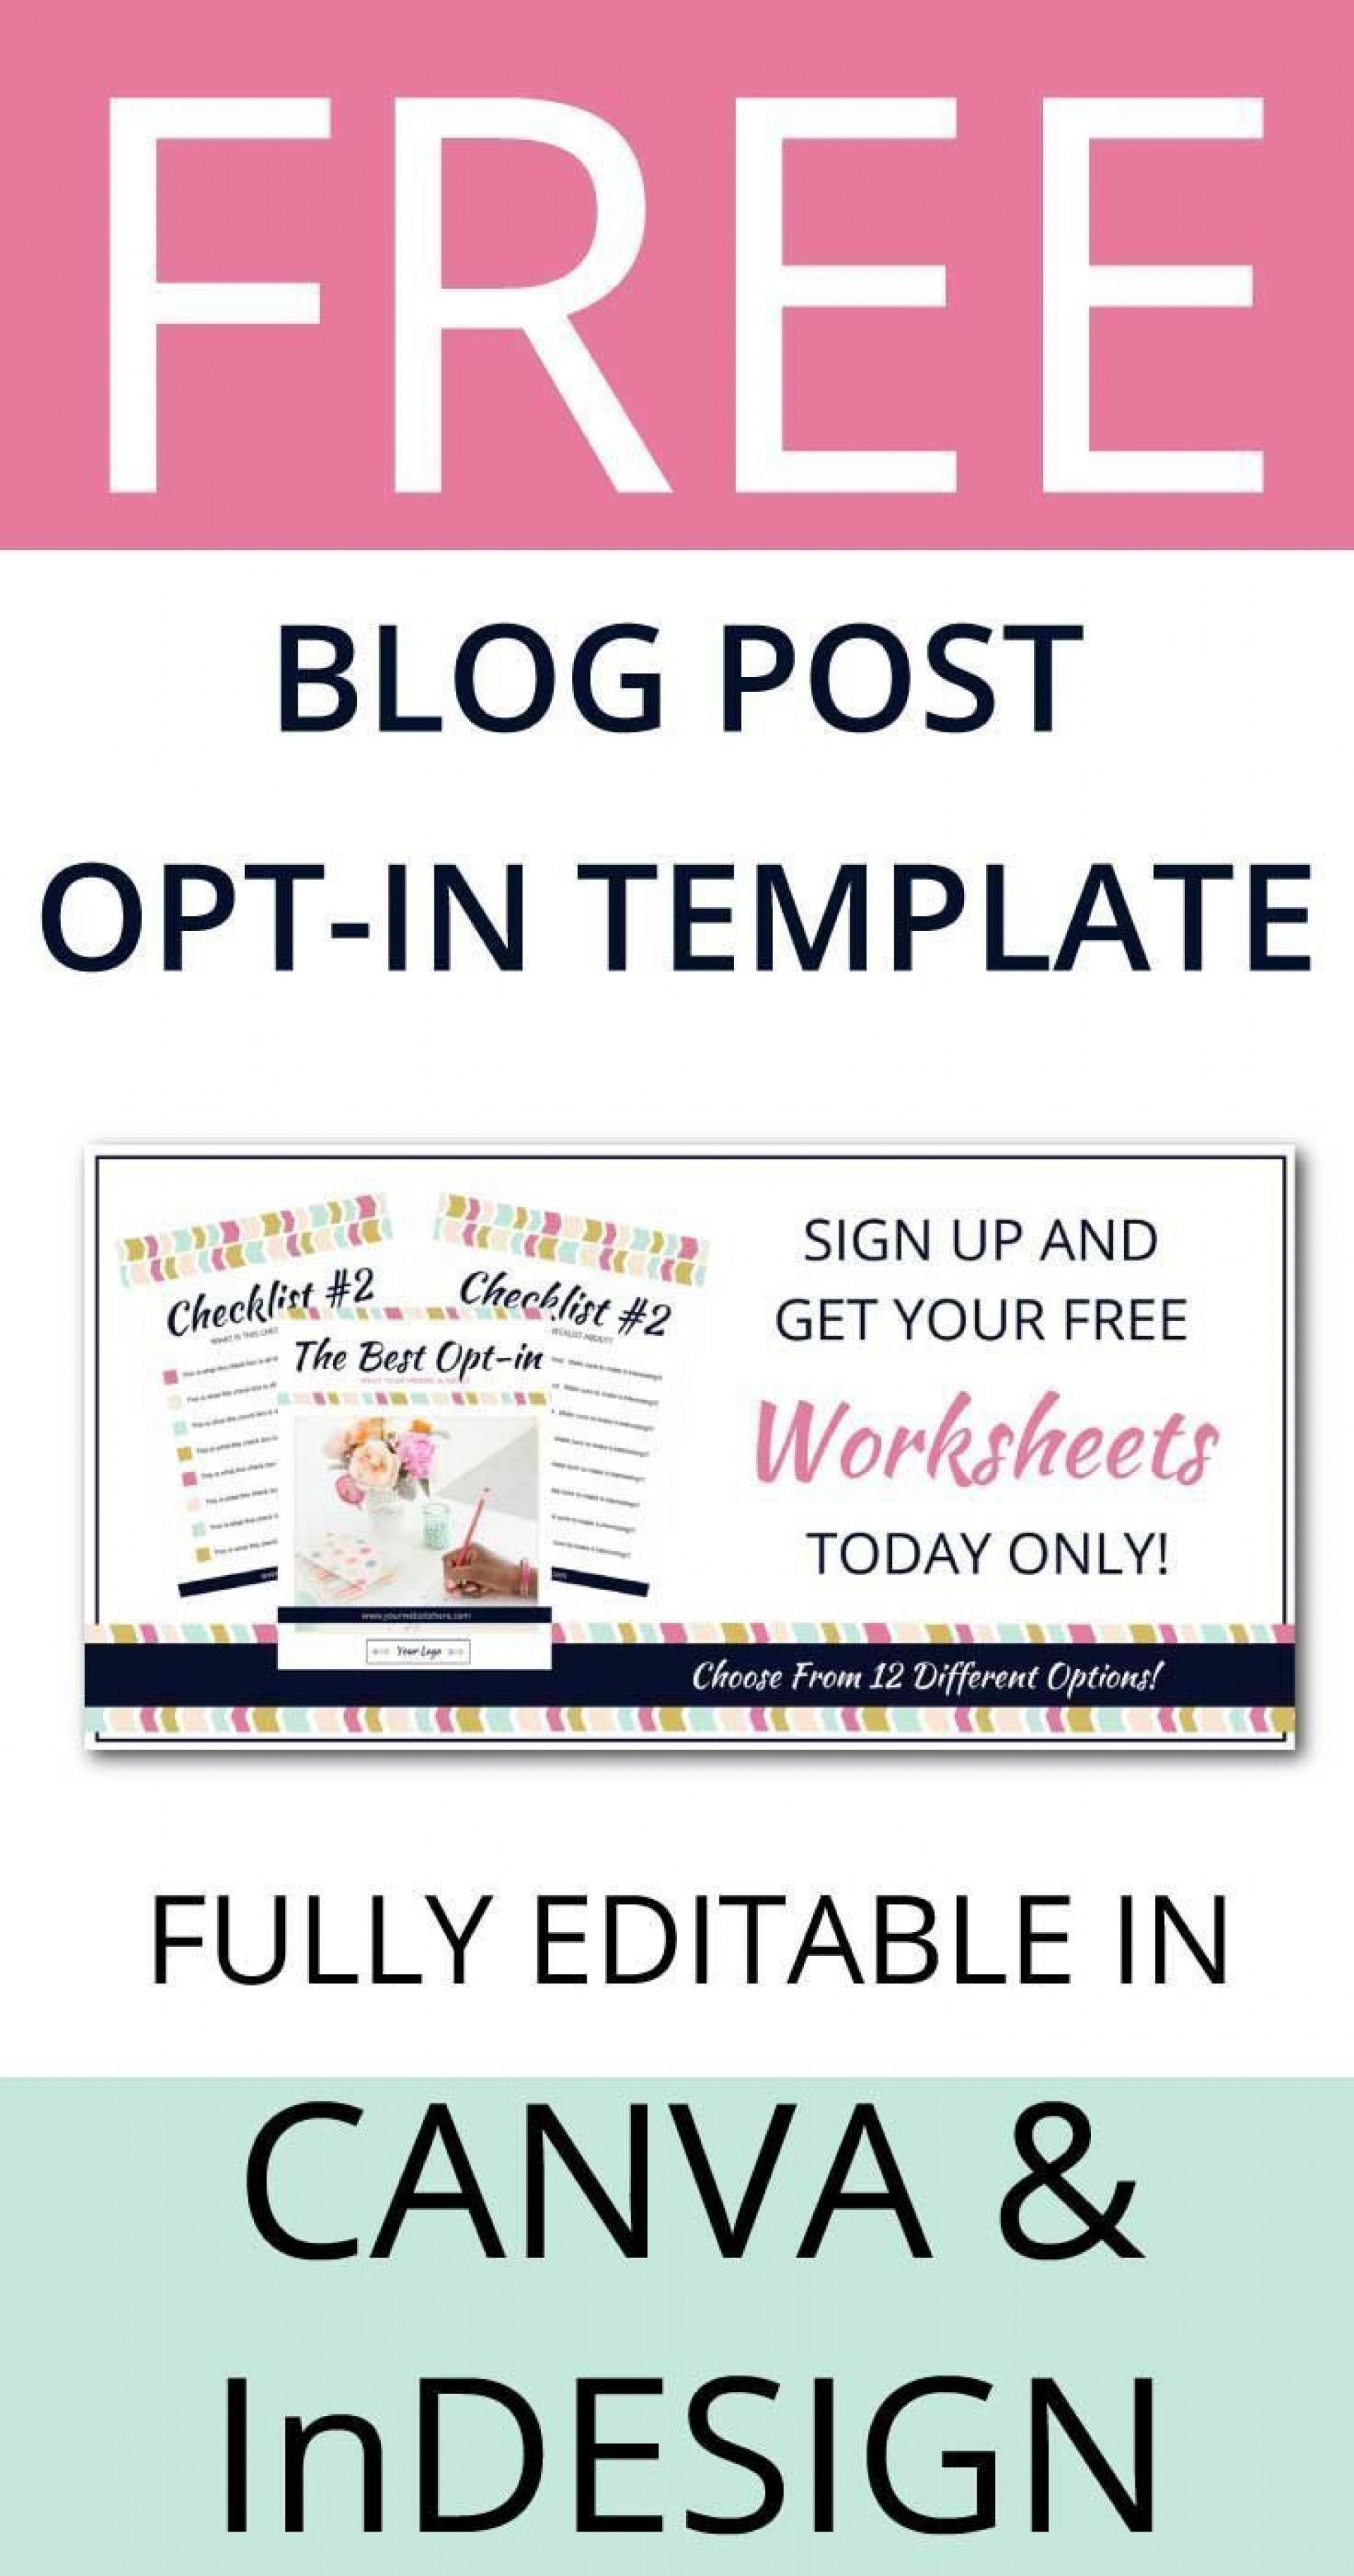 005 Sensational Join Our Mailing List Template High Resolution  Email1920